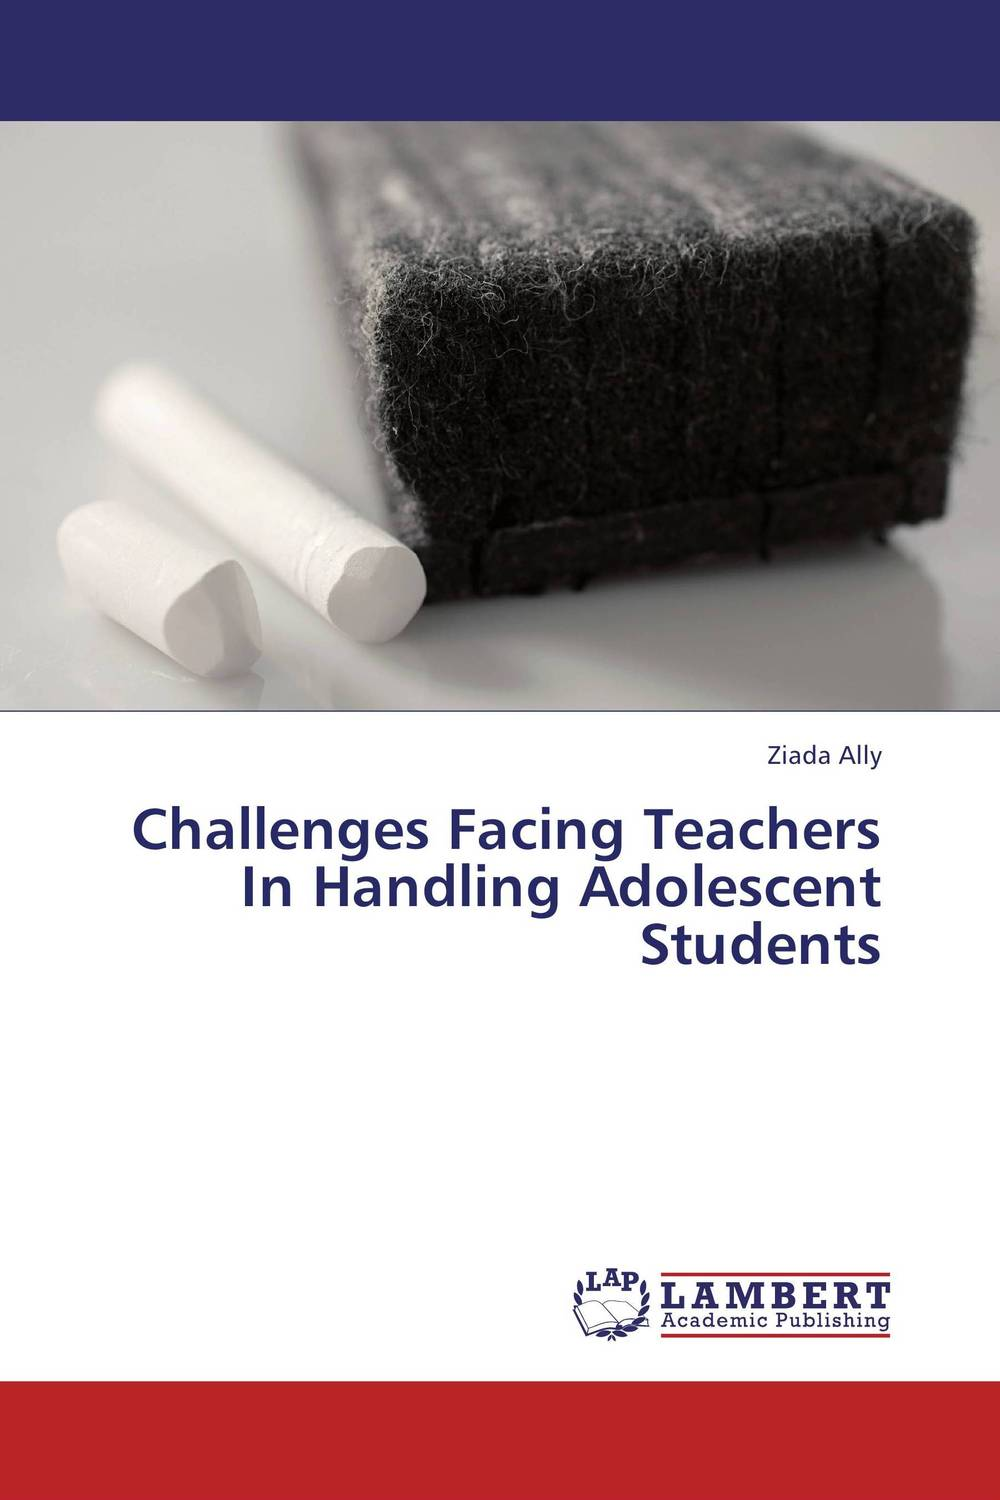 Challenges Facing Teachers In Handling Adolescent Students administrative challenges facing public secondary schools